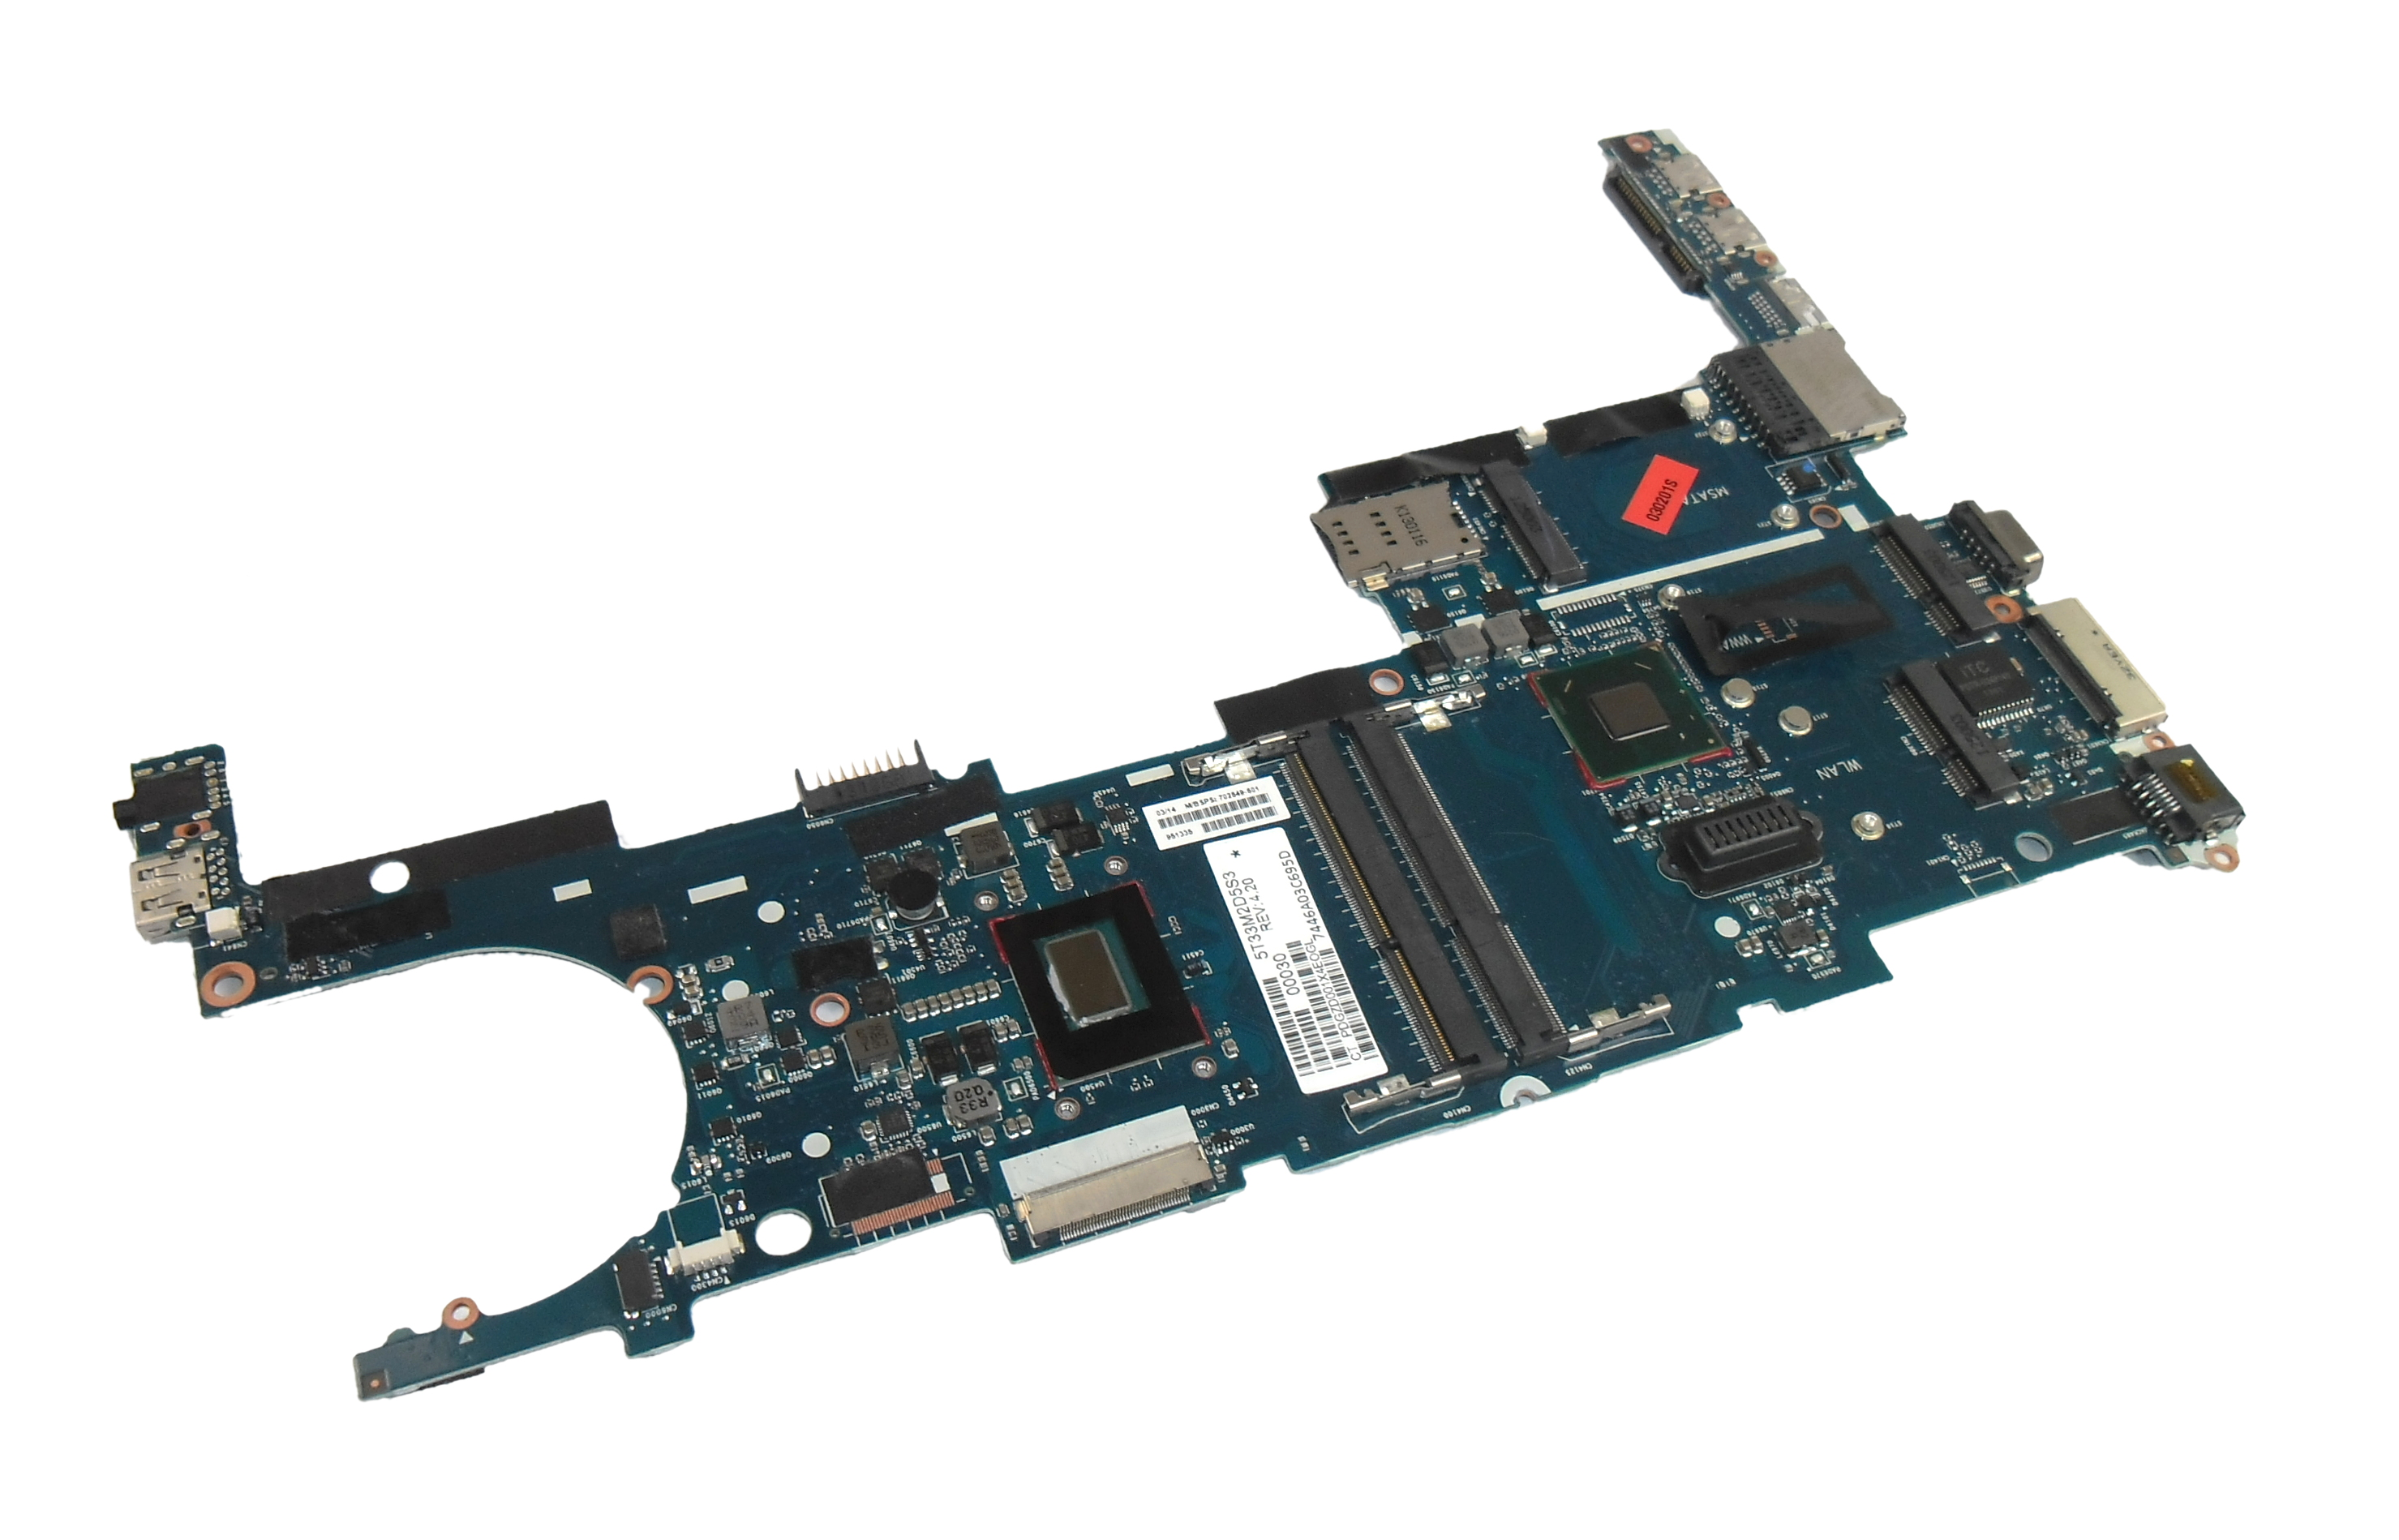 HP 702849-601 EliteBook Folio 9470m Motherboard with i5-3427U(SR0N7) Processor